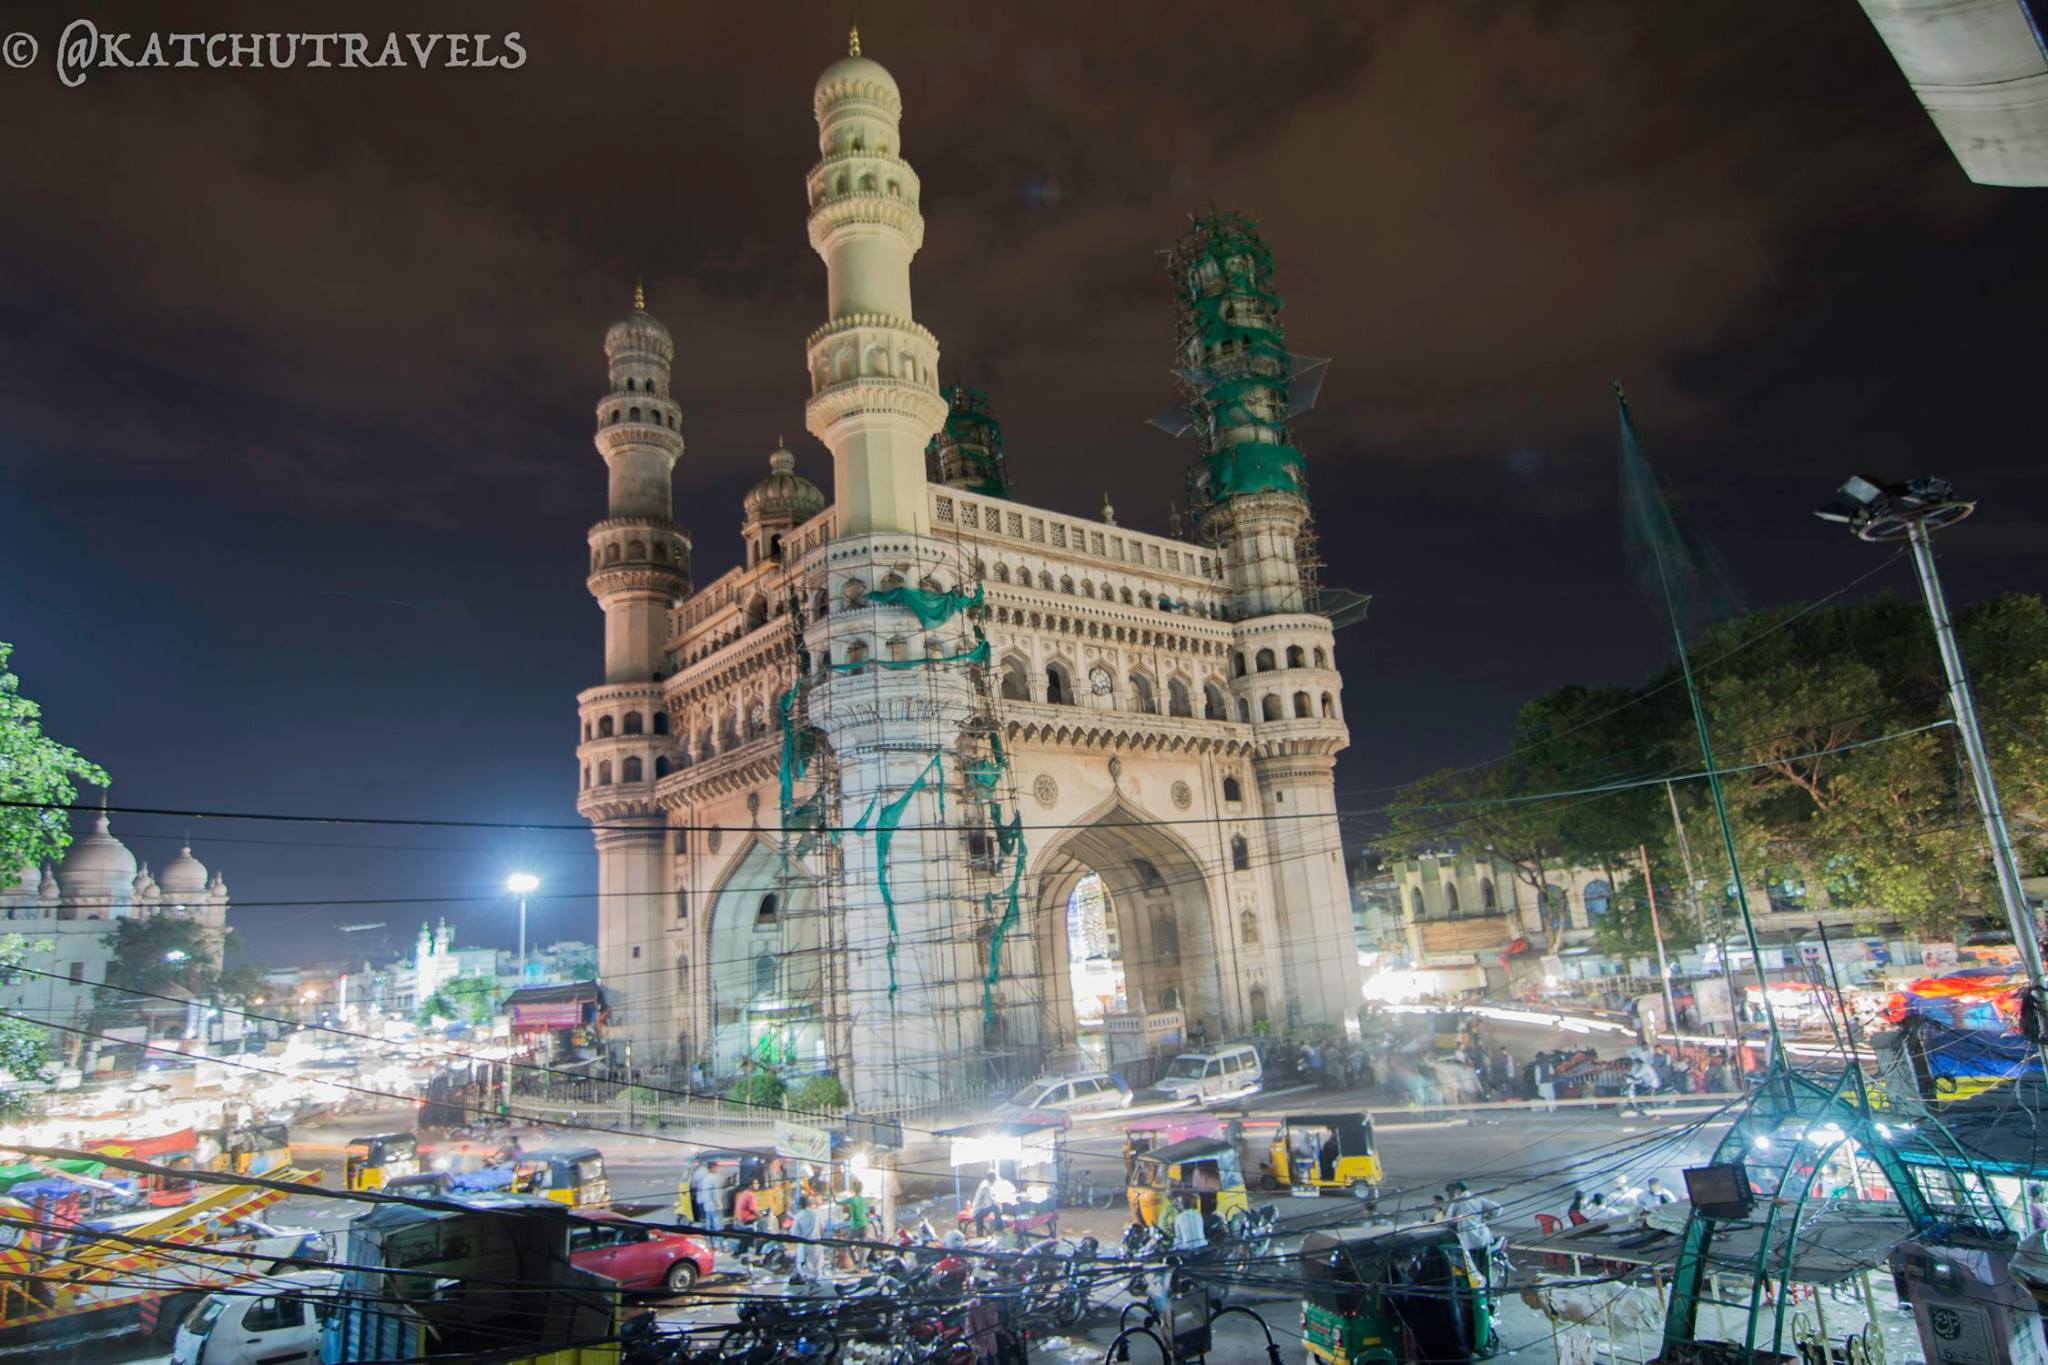 The Charminar shines through the night